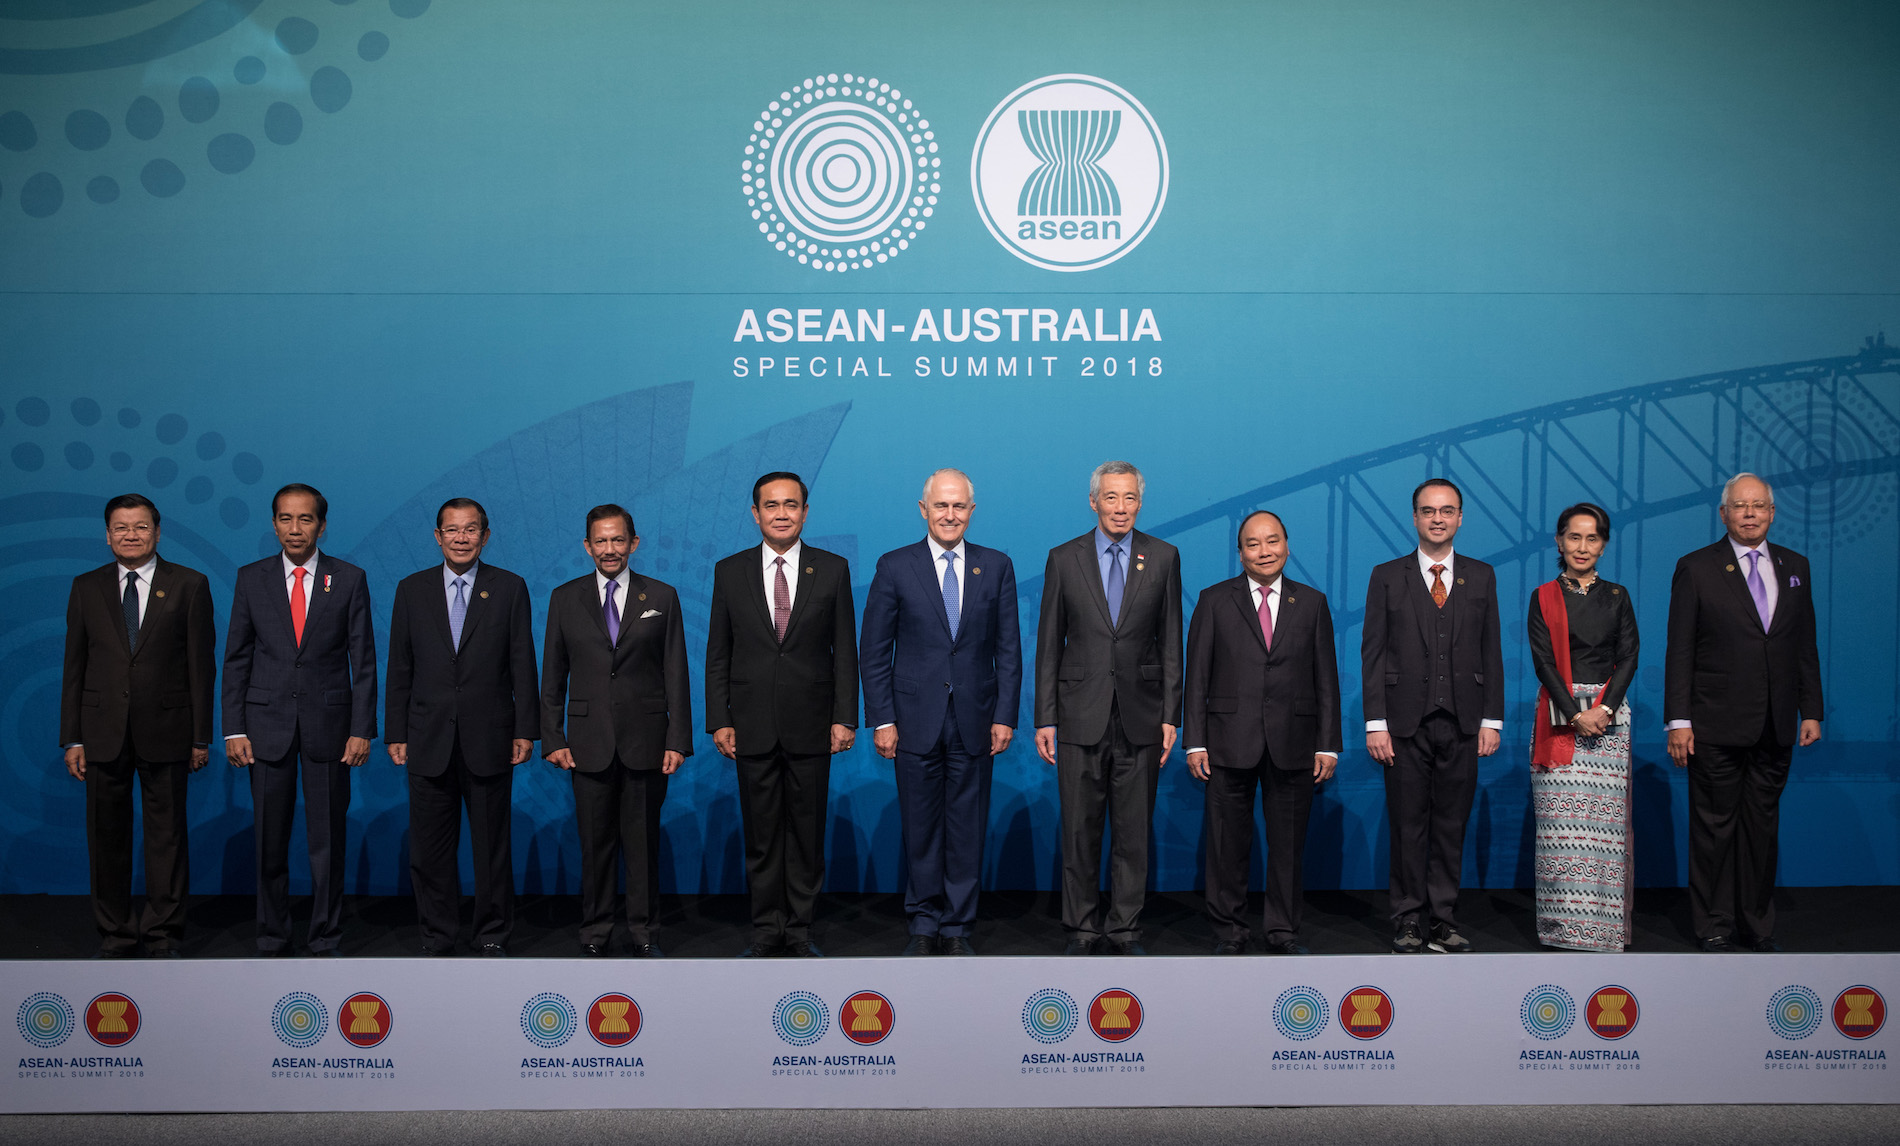 ASEAN–Australia relations: The suitable status quo - Lowy